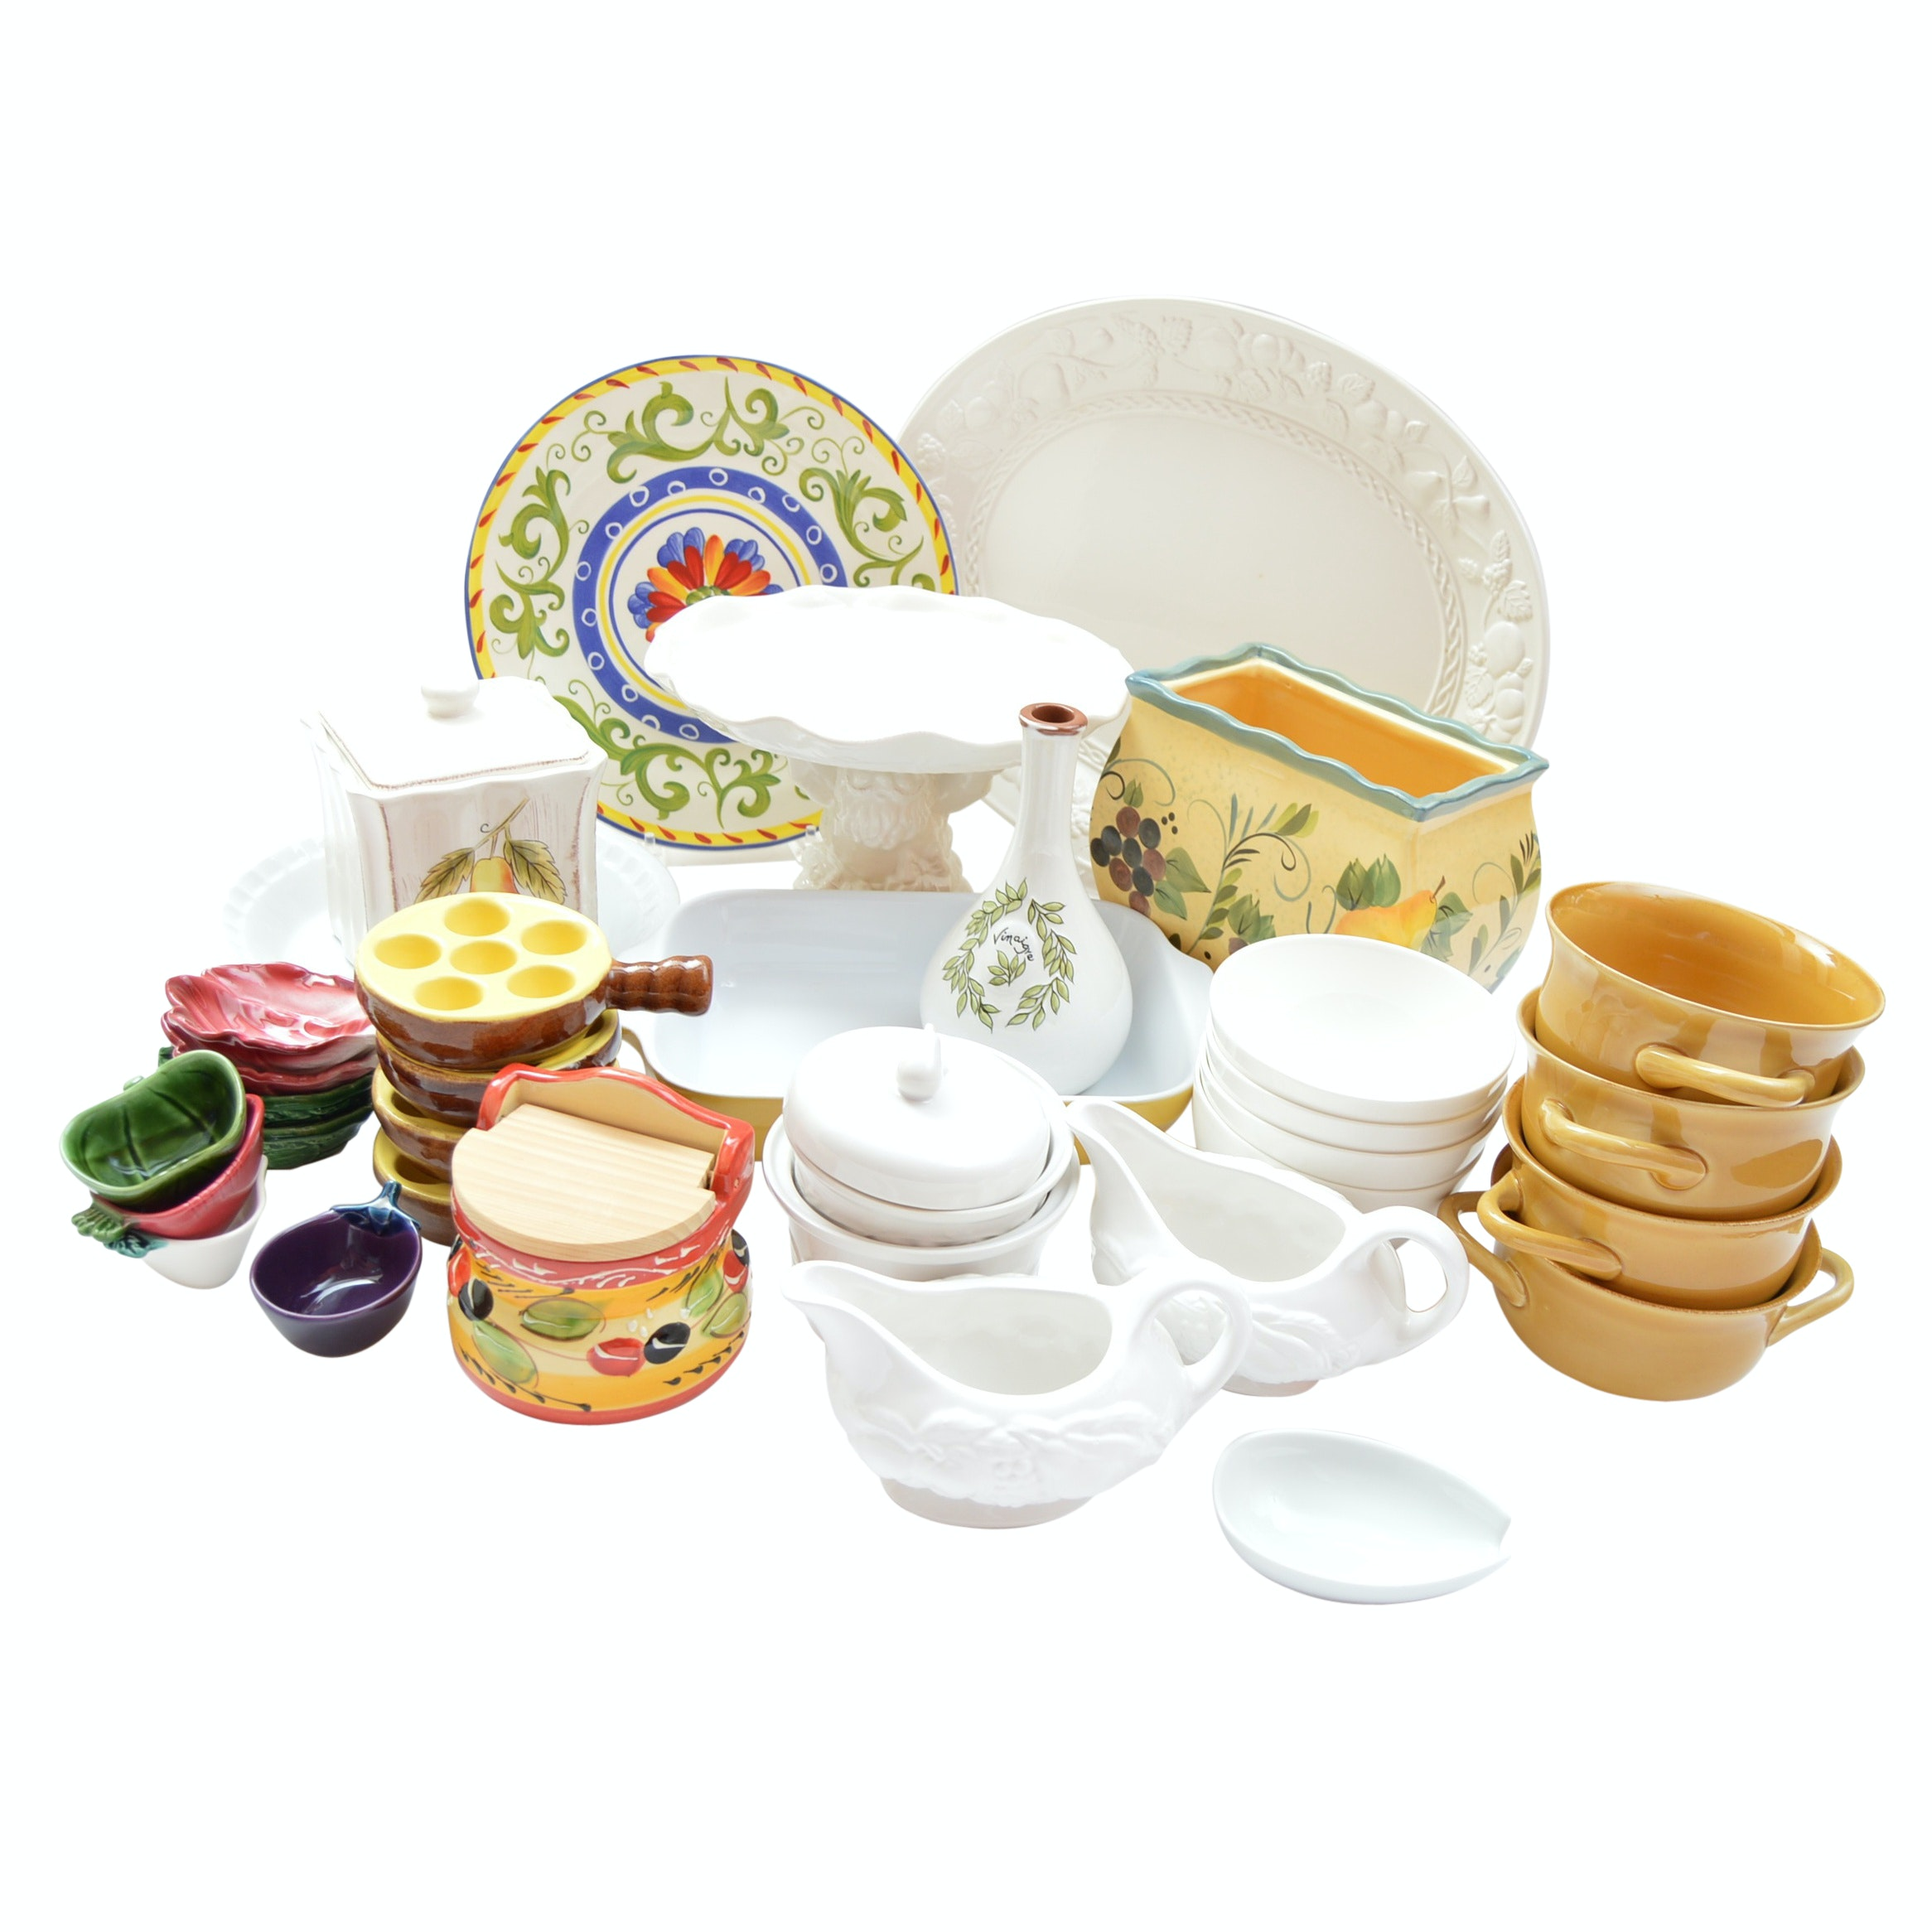 Italian Ceramic Tableware and Serveware With Williams-Sonoma and Emile Henry